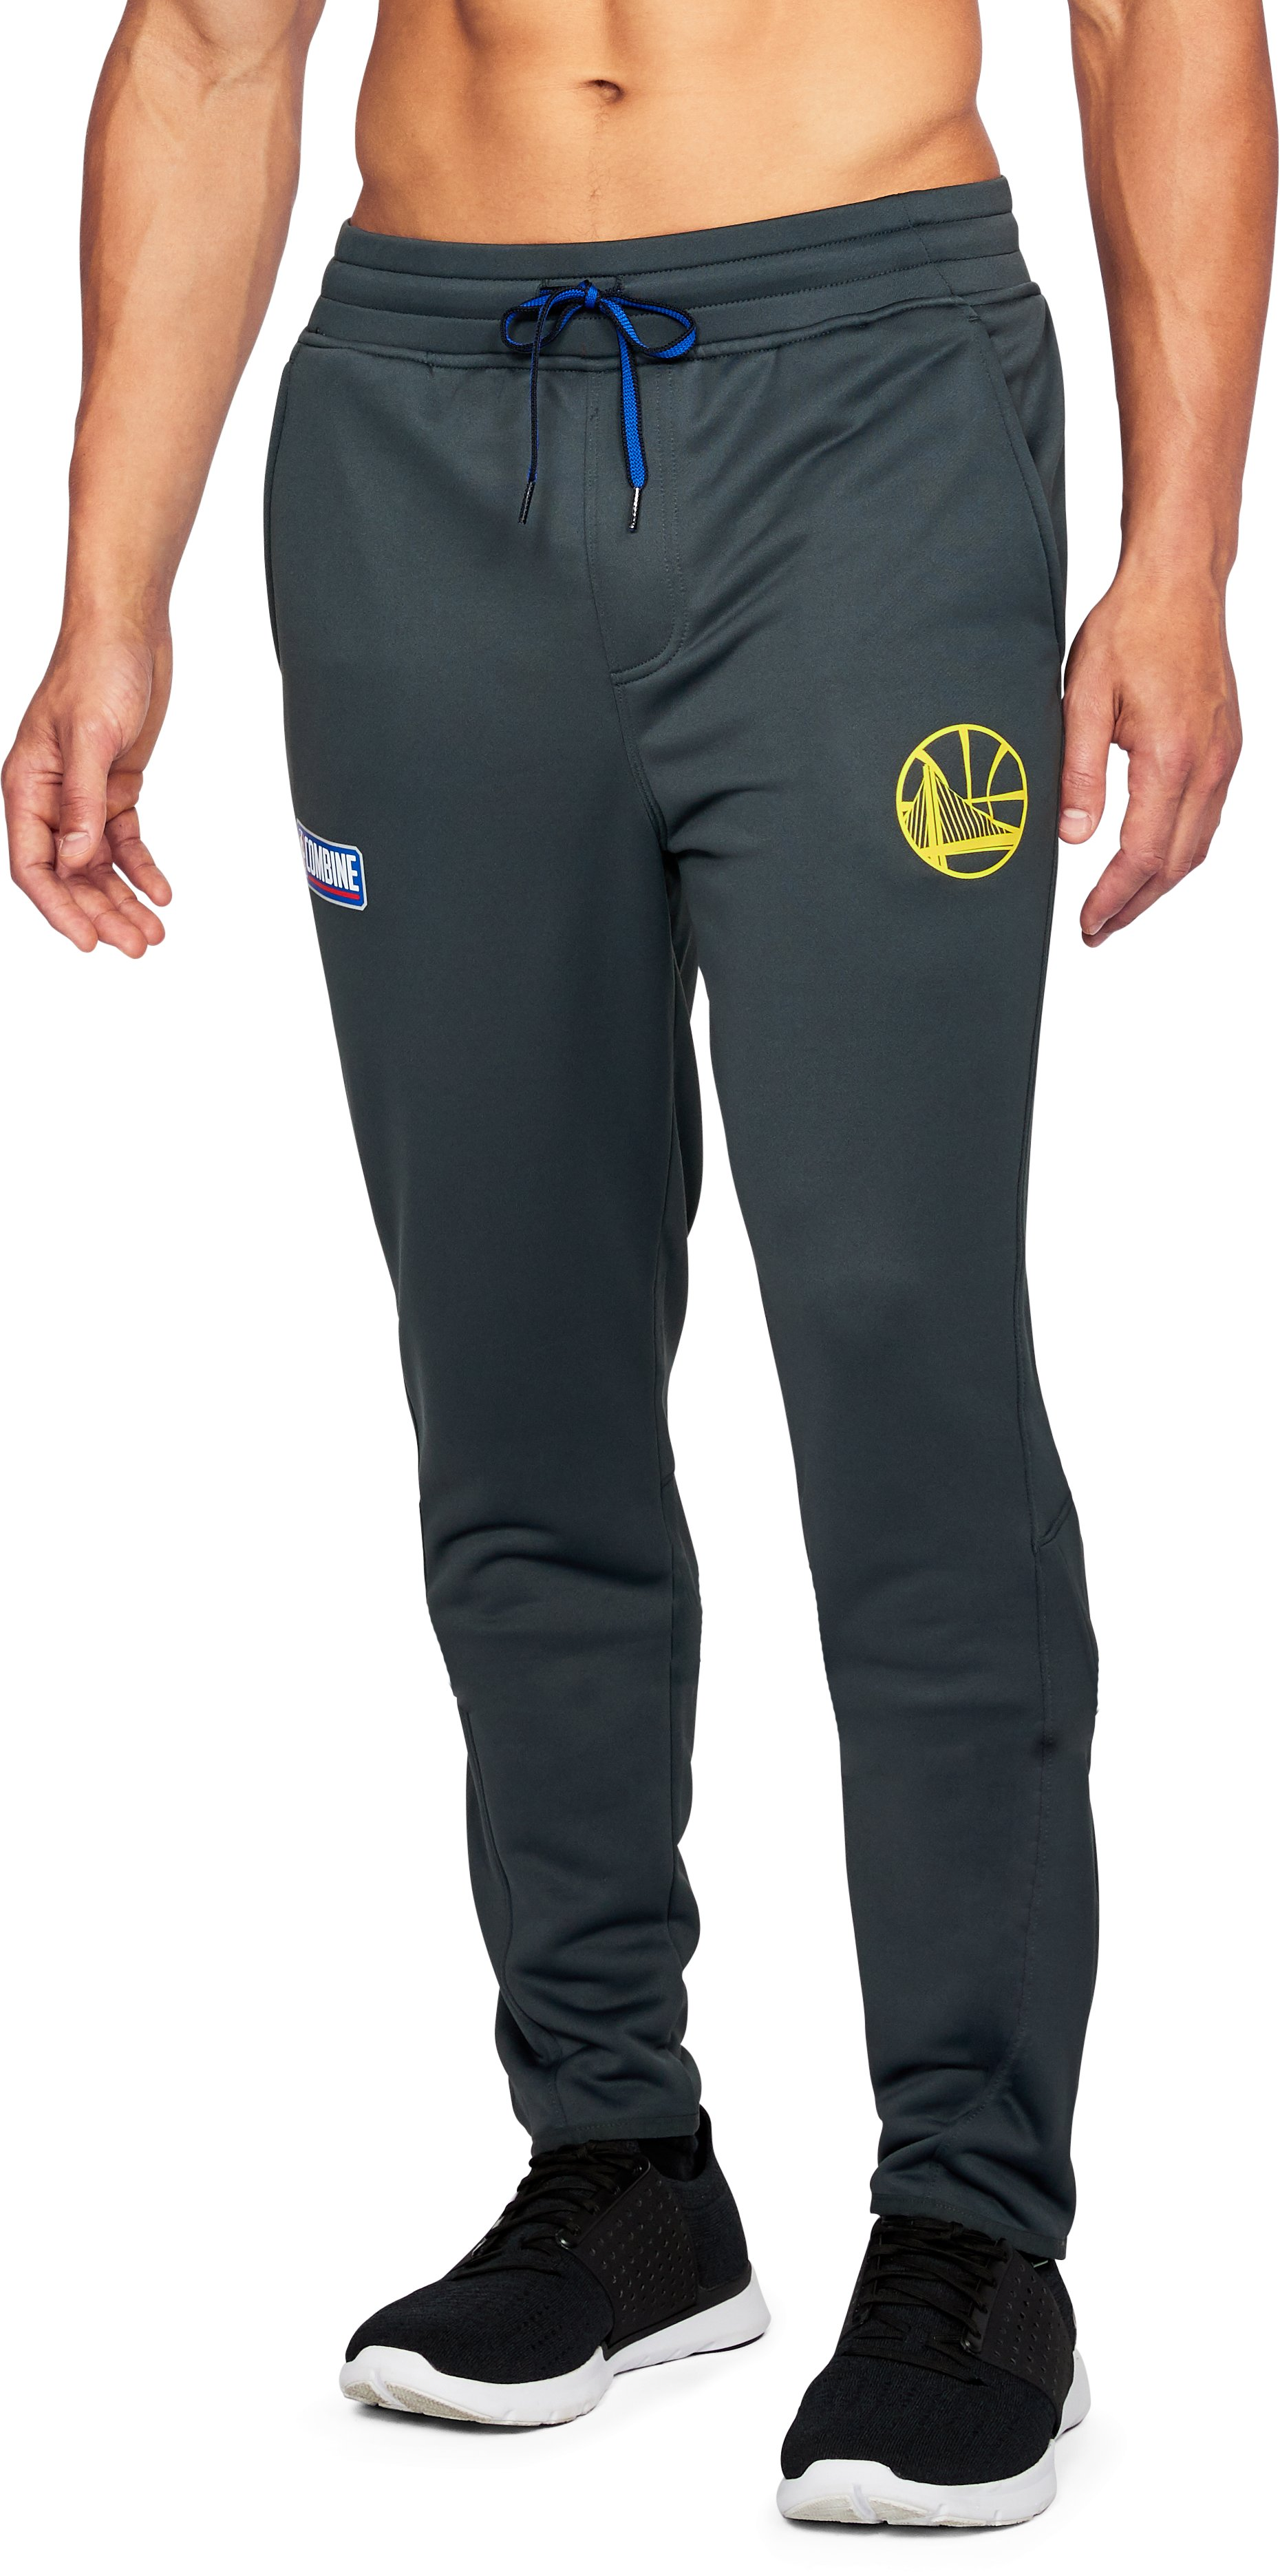 Men's NBA Combine UA Baseline Tapered Pants, NBA_GOLDEN STATE WARRIORS_STEALTH GRAY